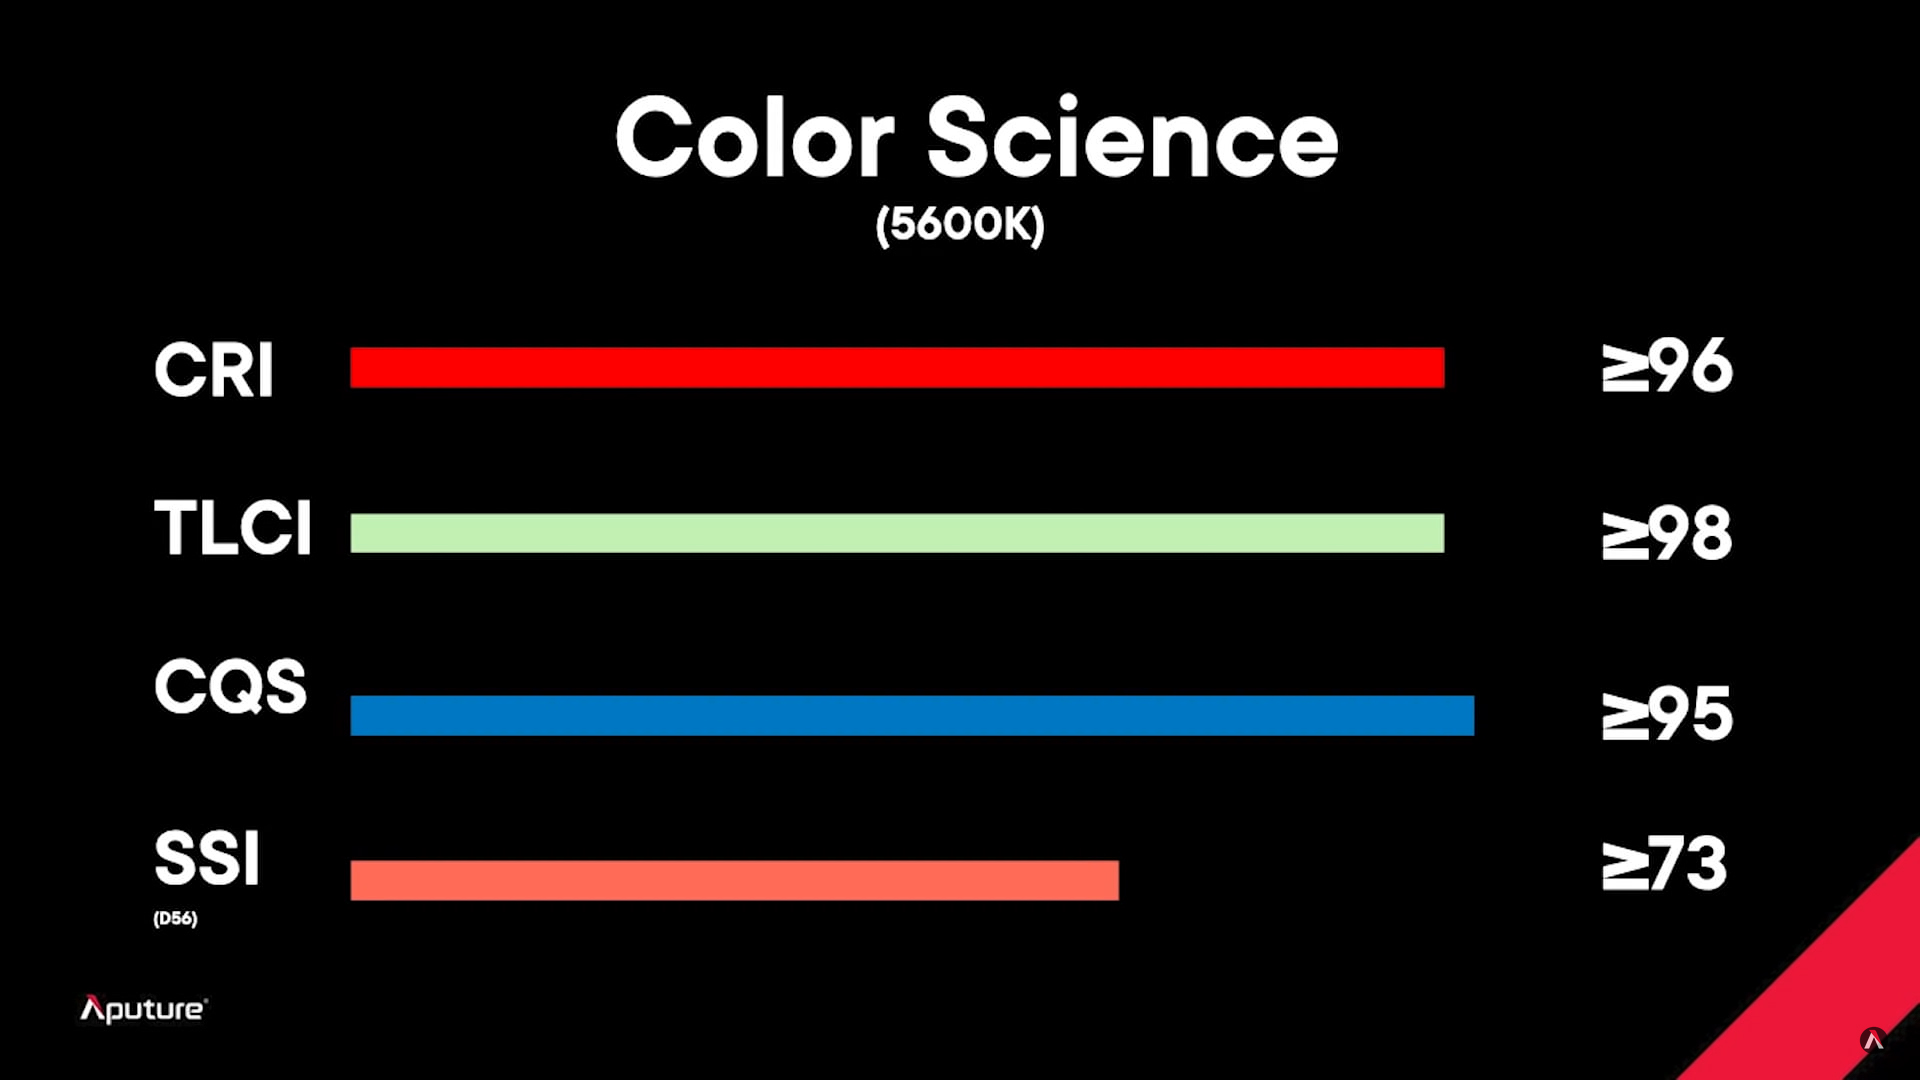 A chart of the color science of the Aputure Light Storm LS 1200D Pro showing CRI, TLCI, CQS and SSI.